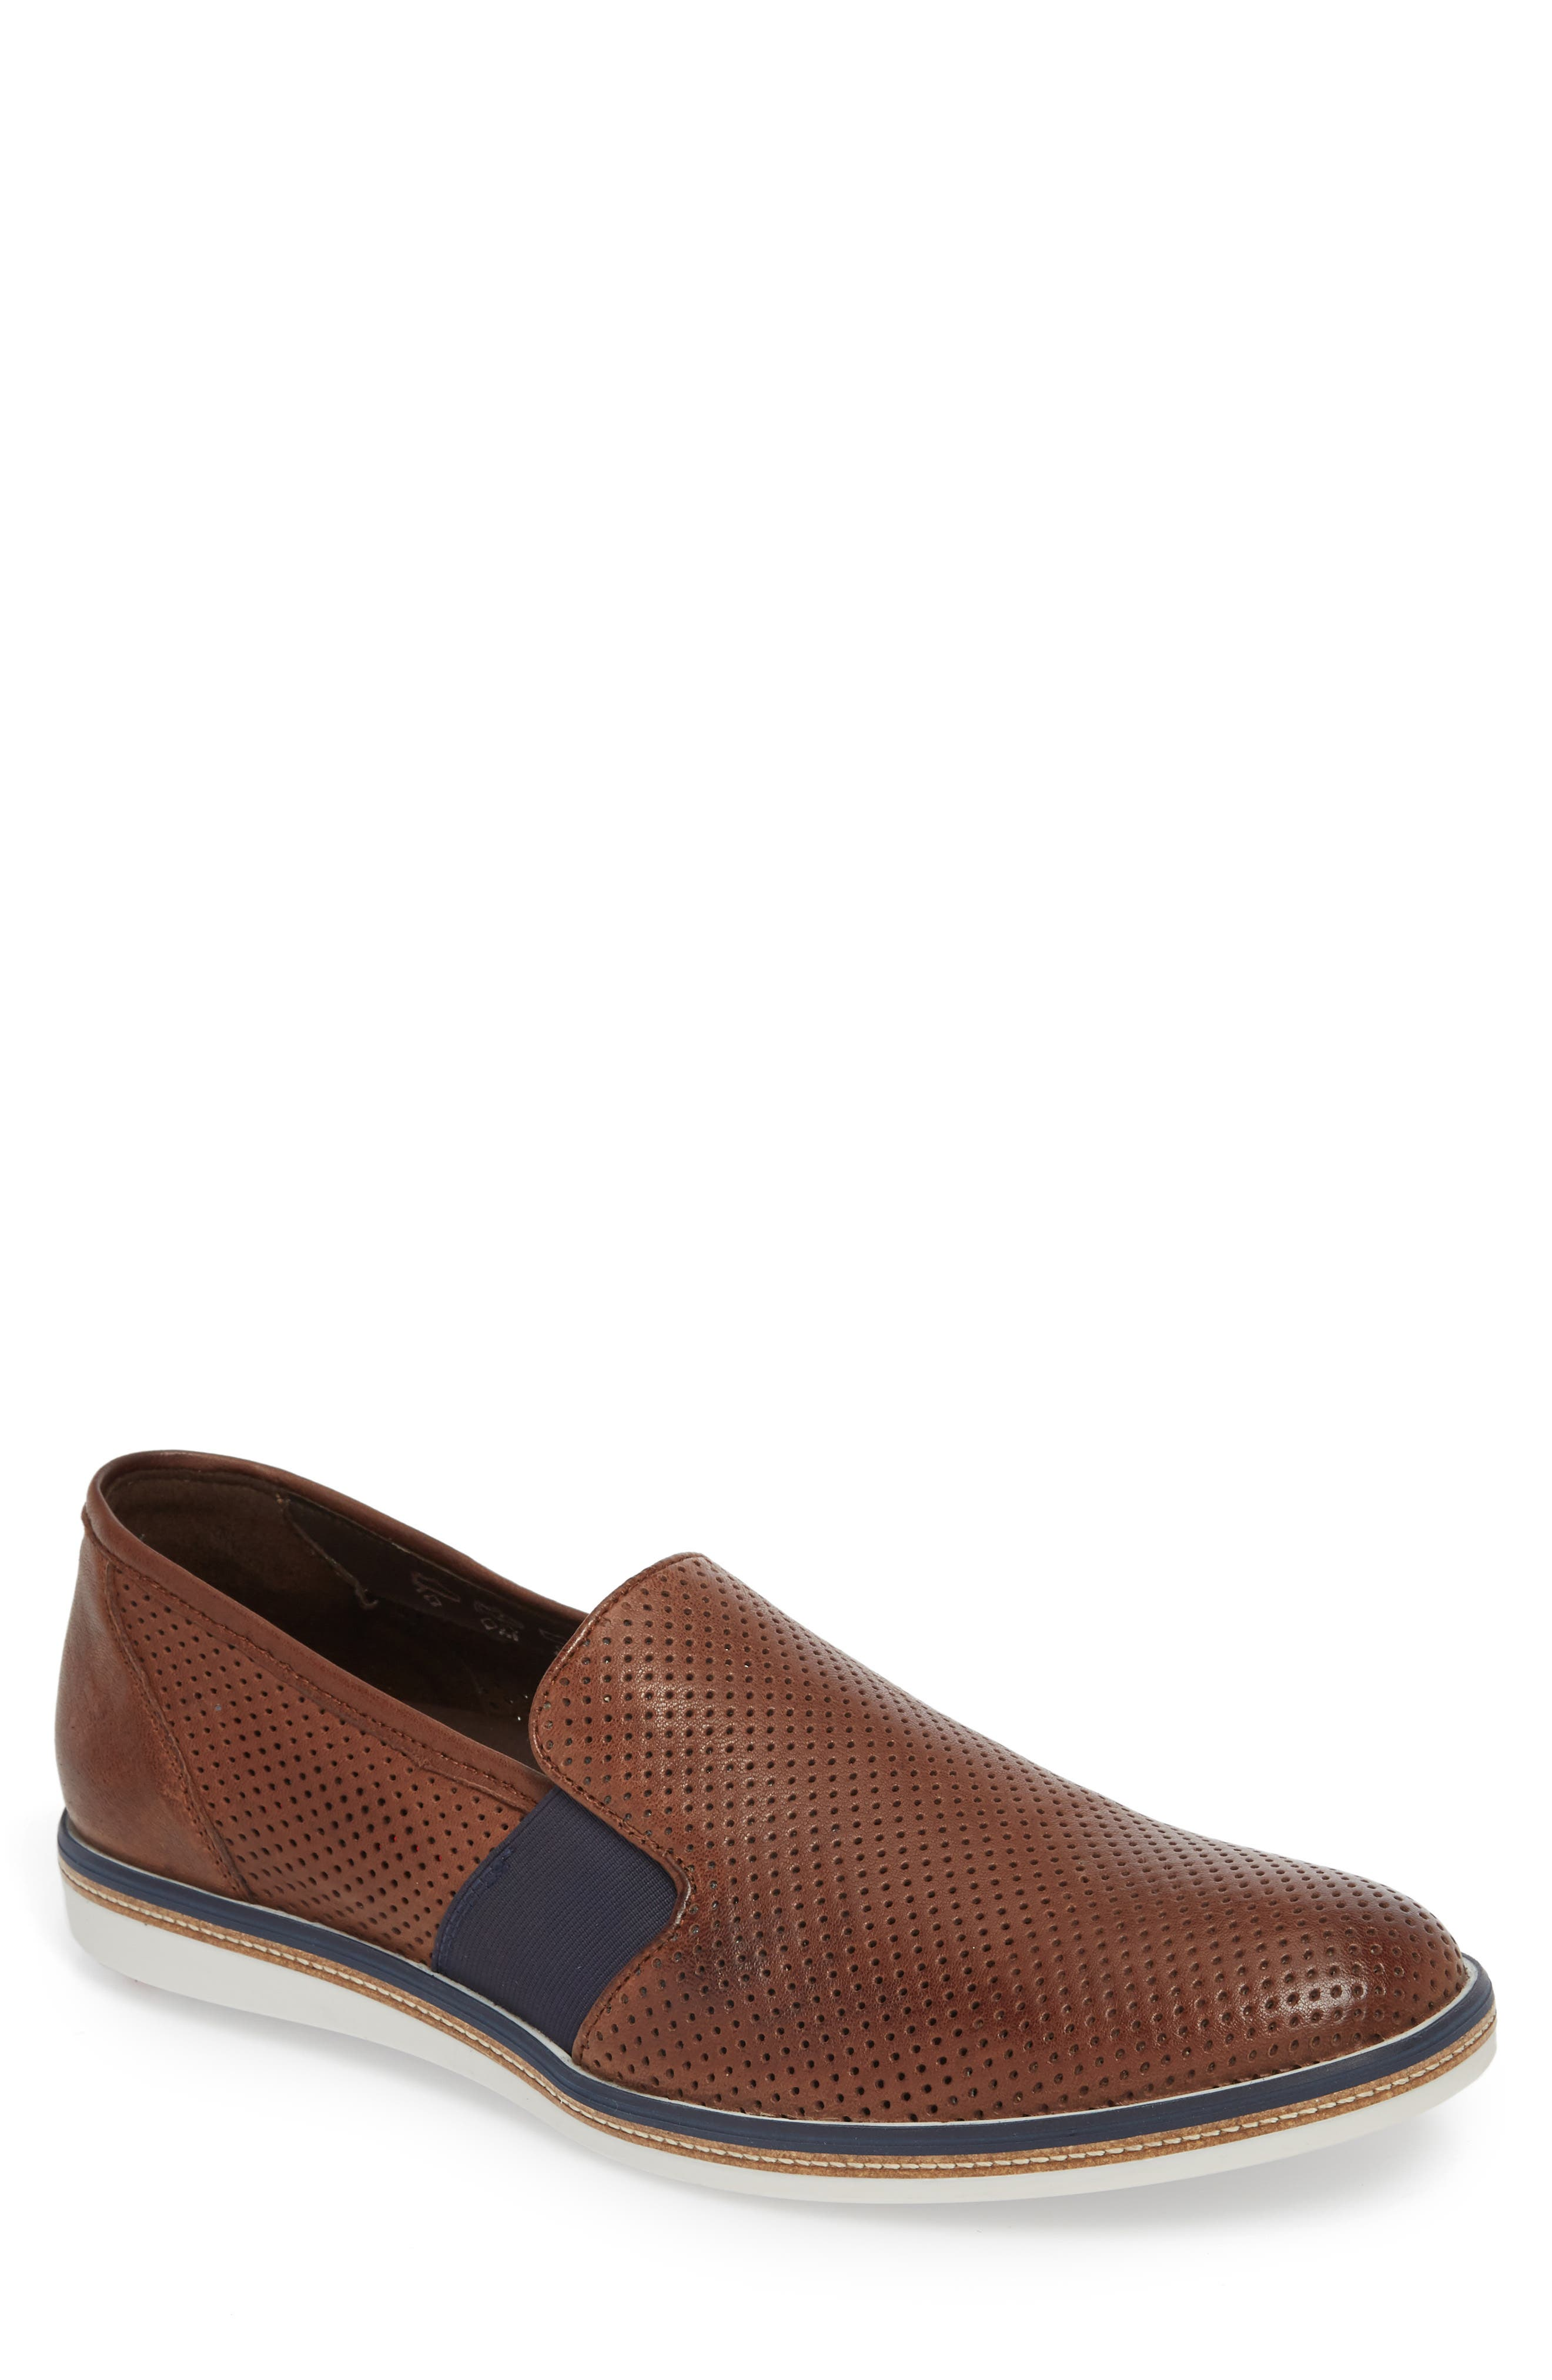 Alister Perforated Loafer,                             Main thumbnail 1, color,                             TOBACCO LEATHER